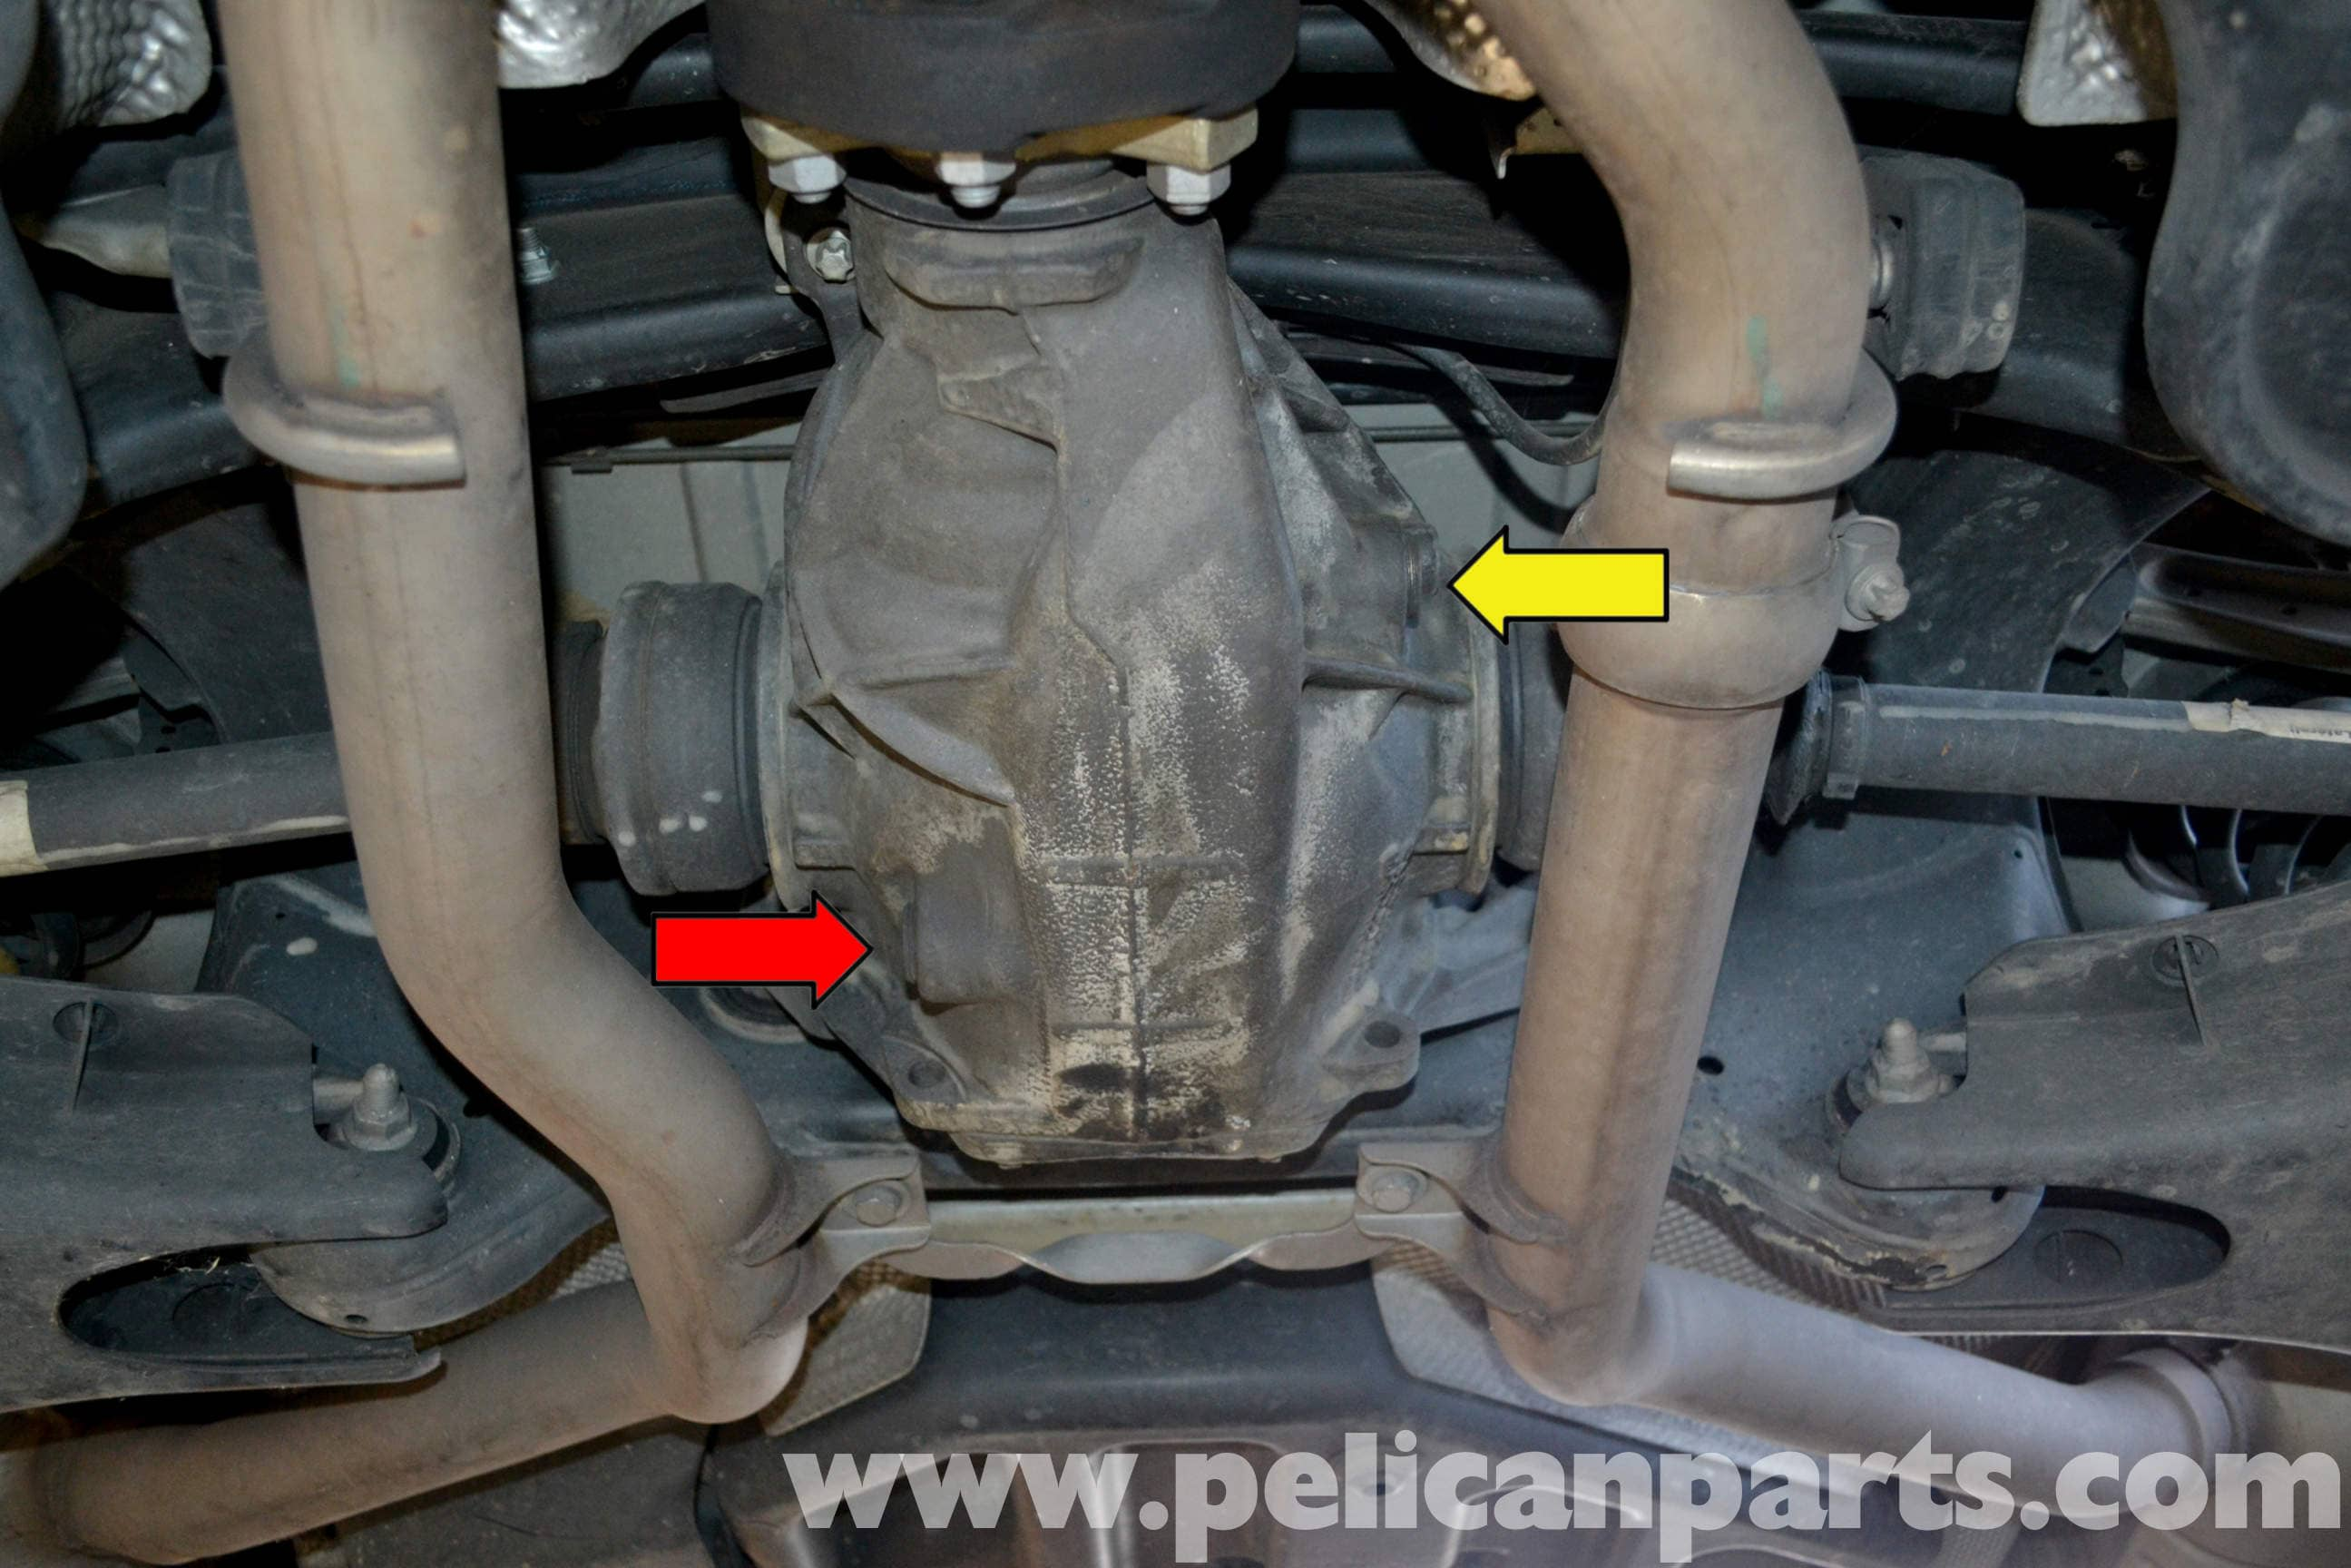 Mercedes-Benz W204 Differential Fluid Replacement - (2008